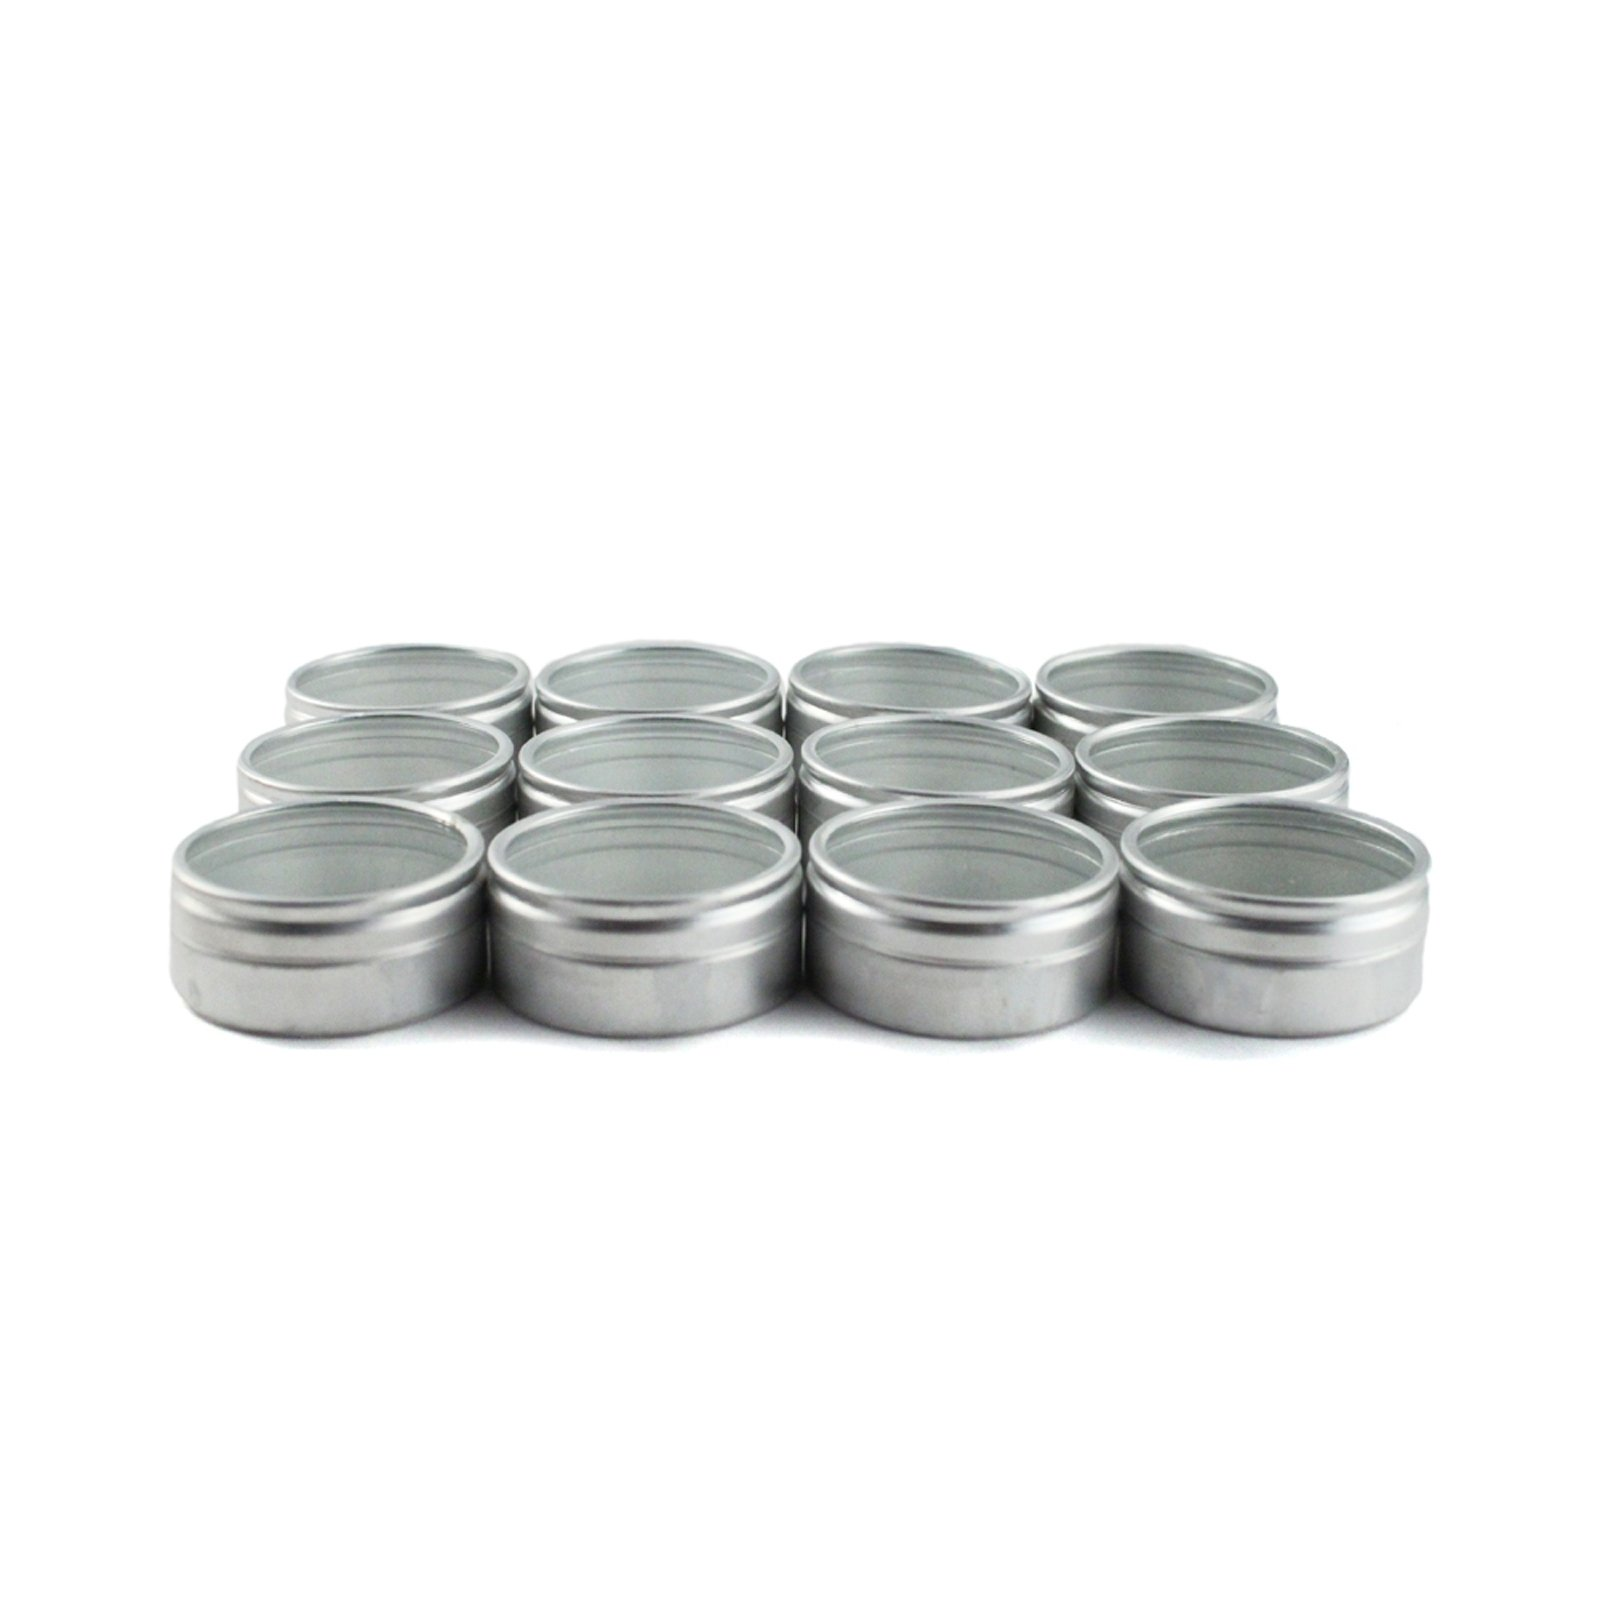 12pc Jewelery and Crafting Small Aluminum Container Jars